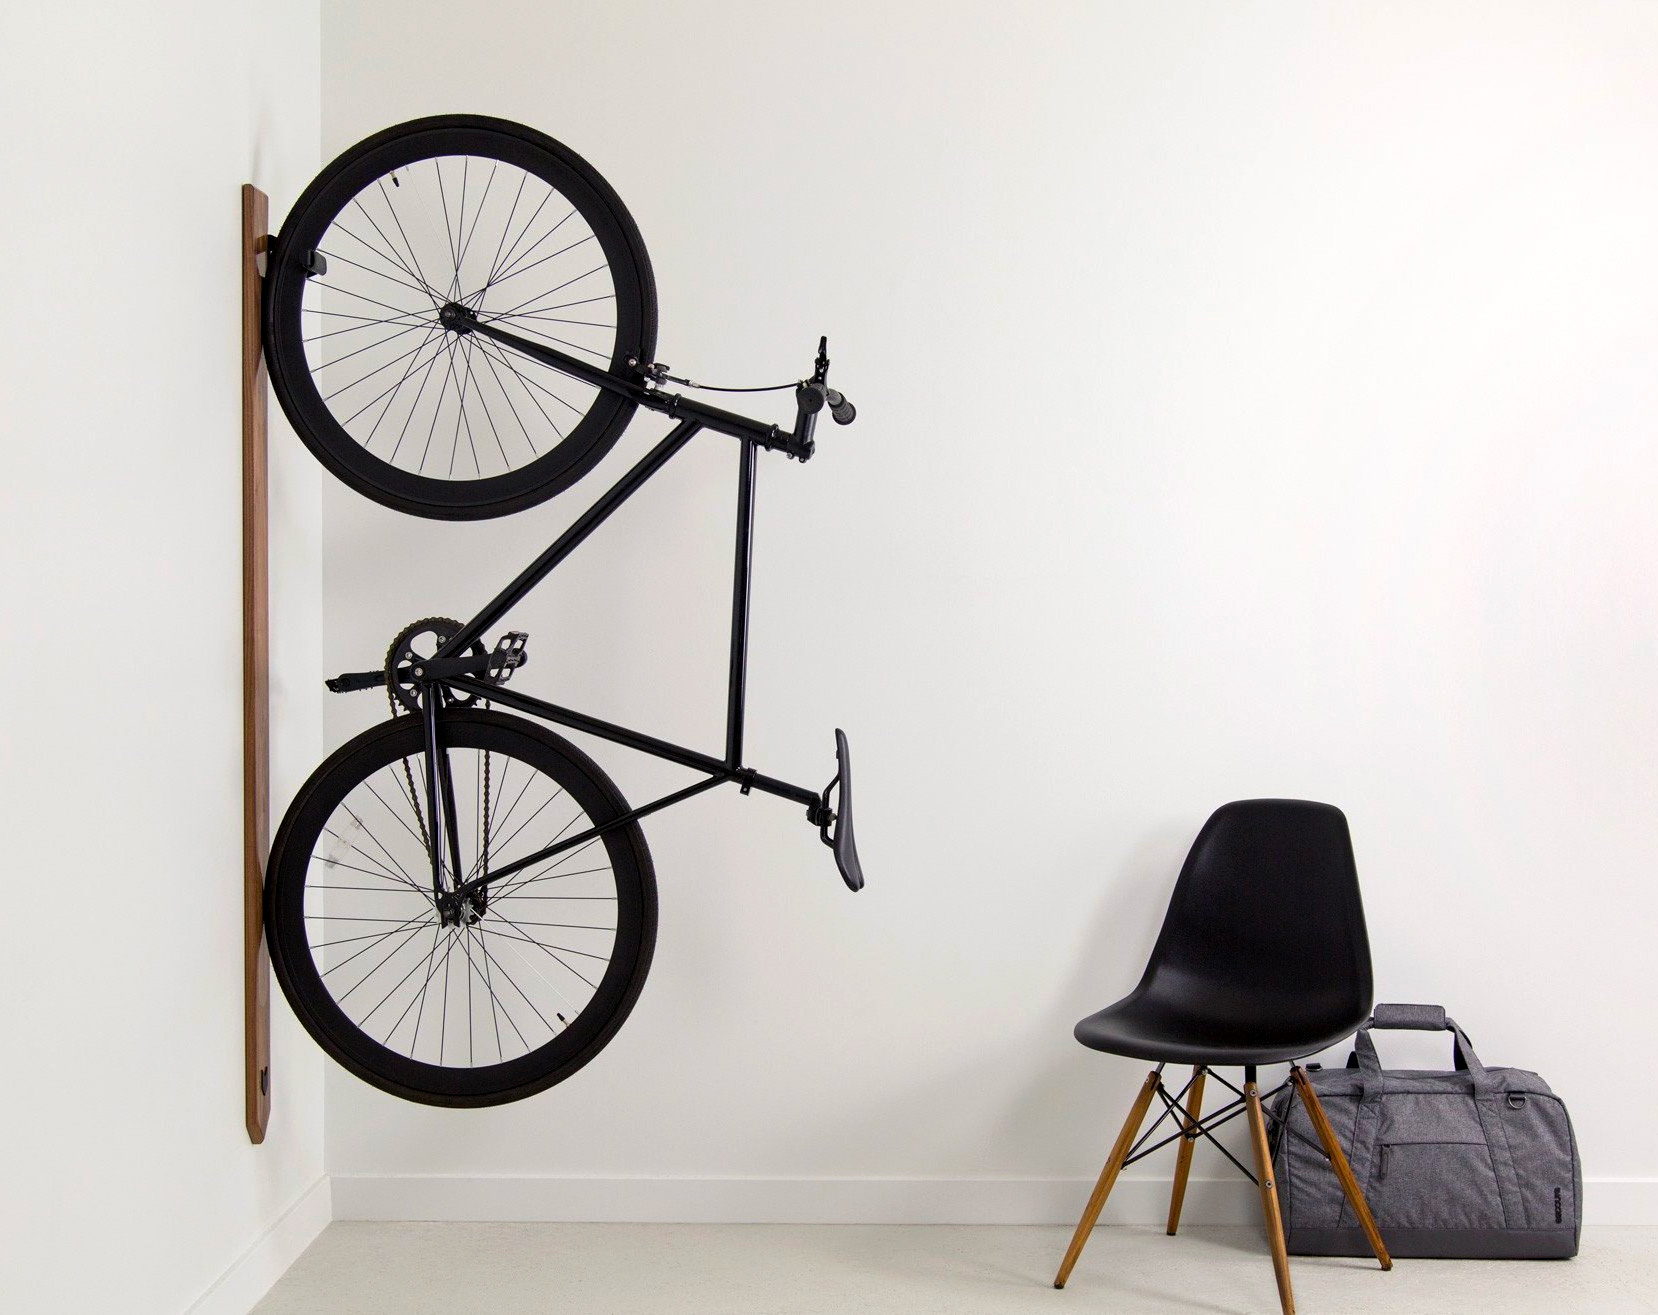 This Clean, Clever Rack Keeps Your Bike Up Out Of The Way at werd.com